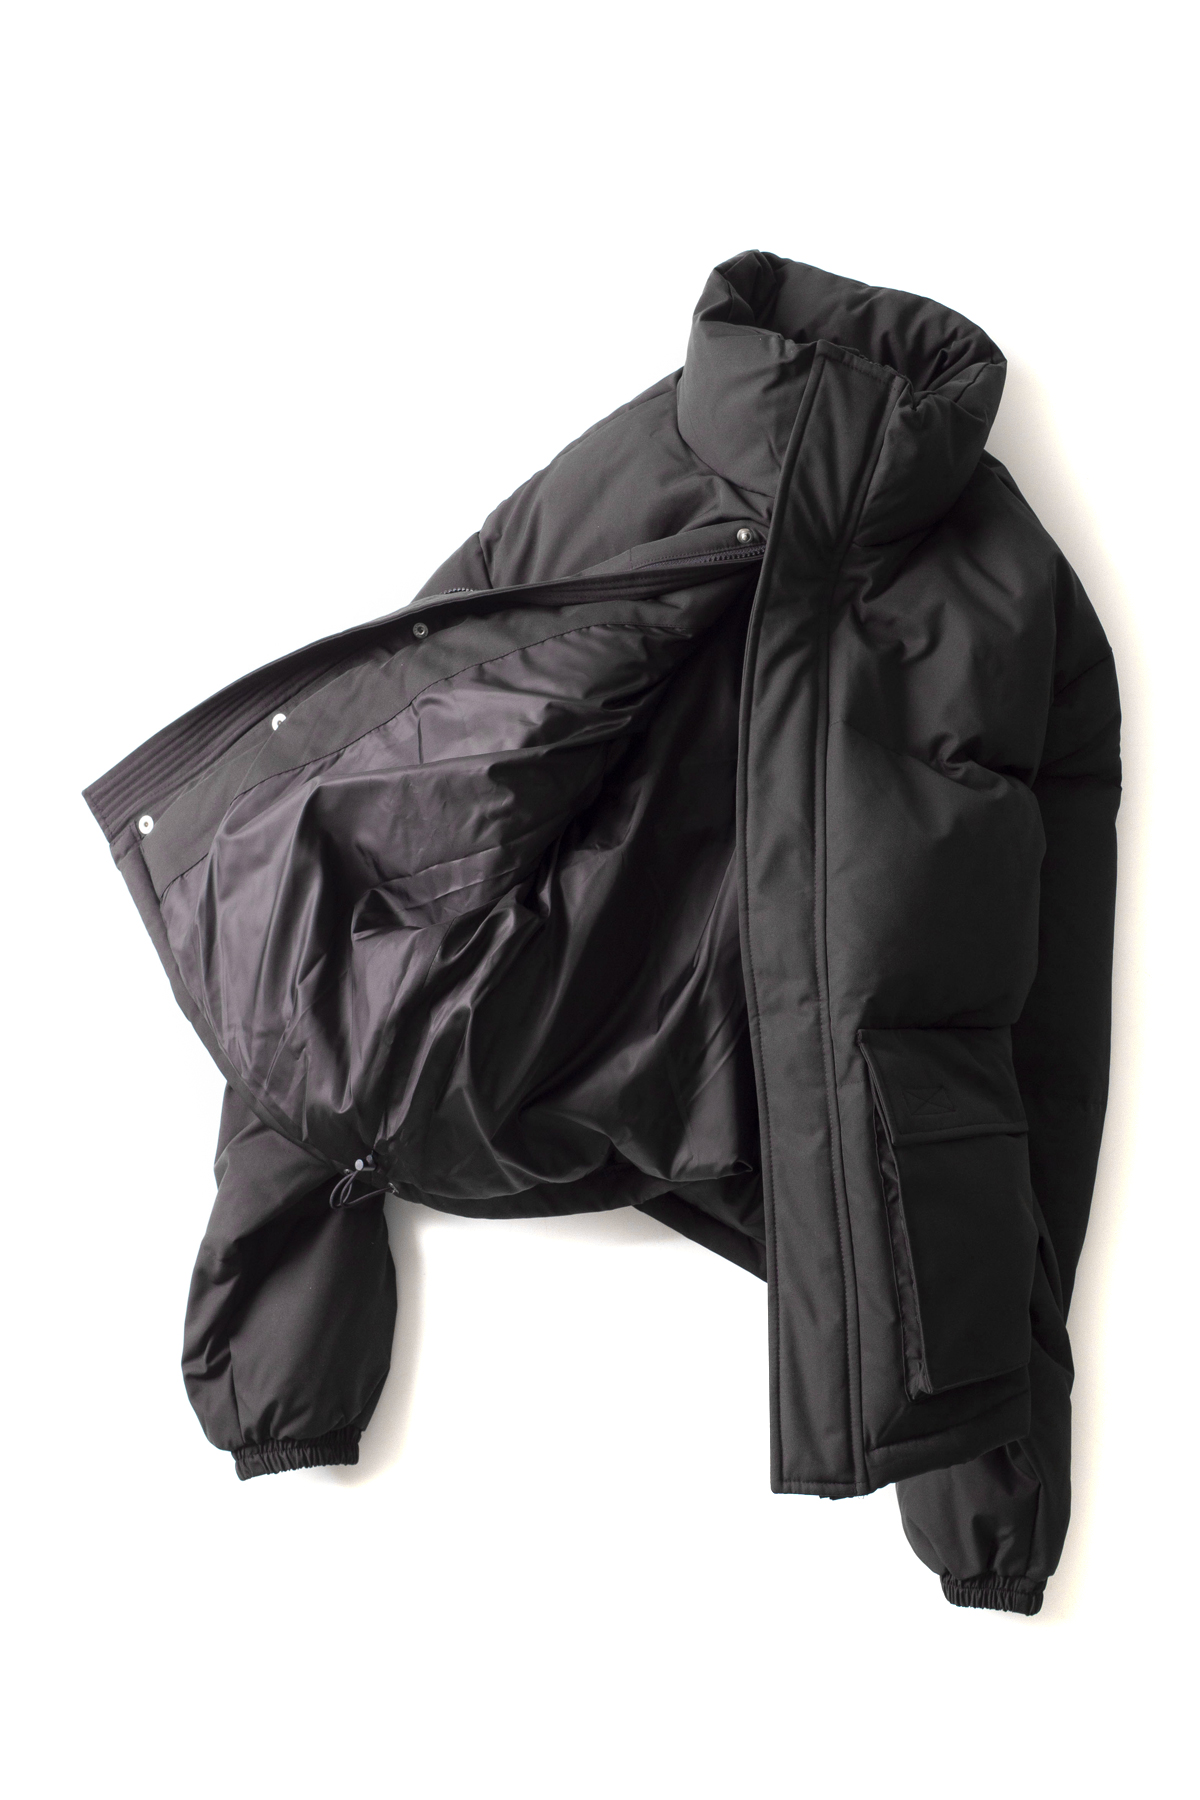 USED FUTURE : Short Puffer (Black)